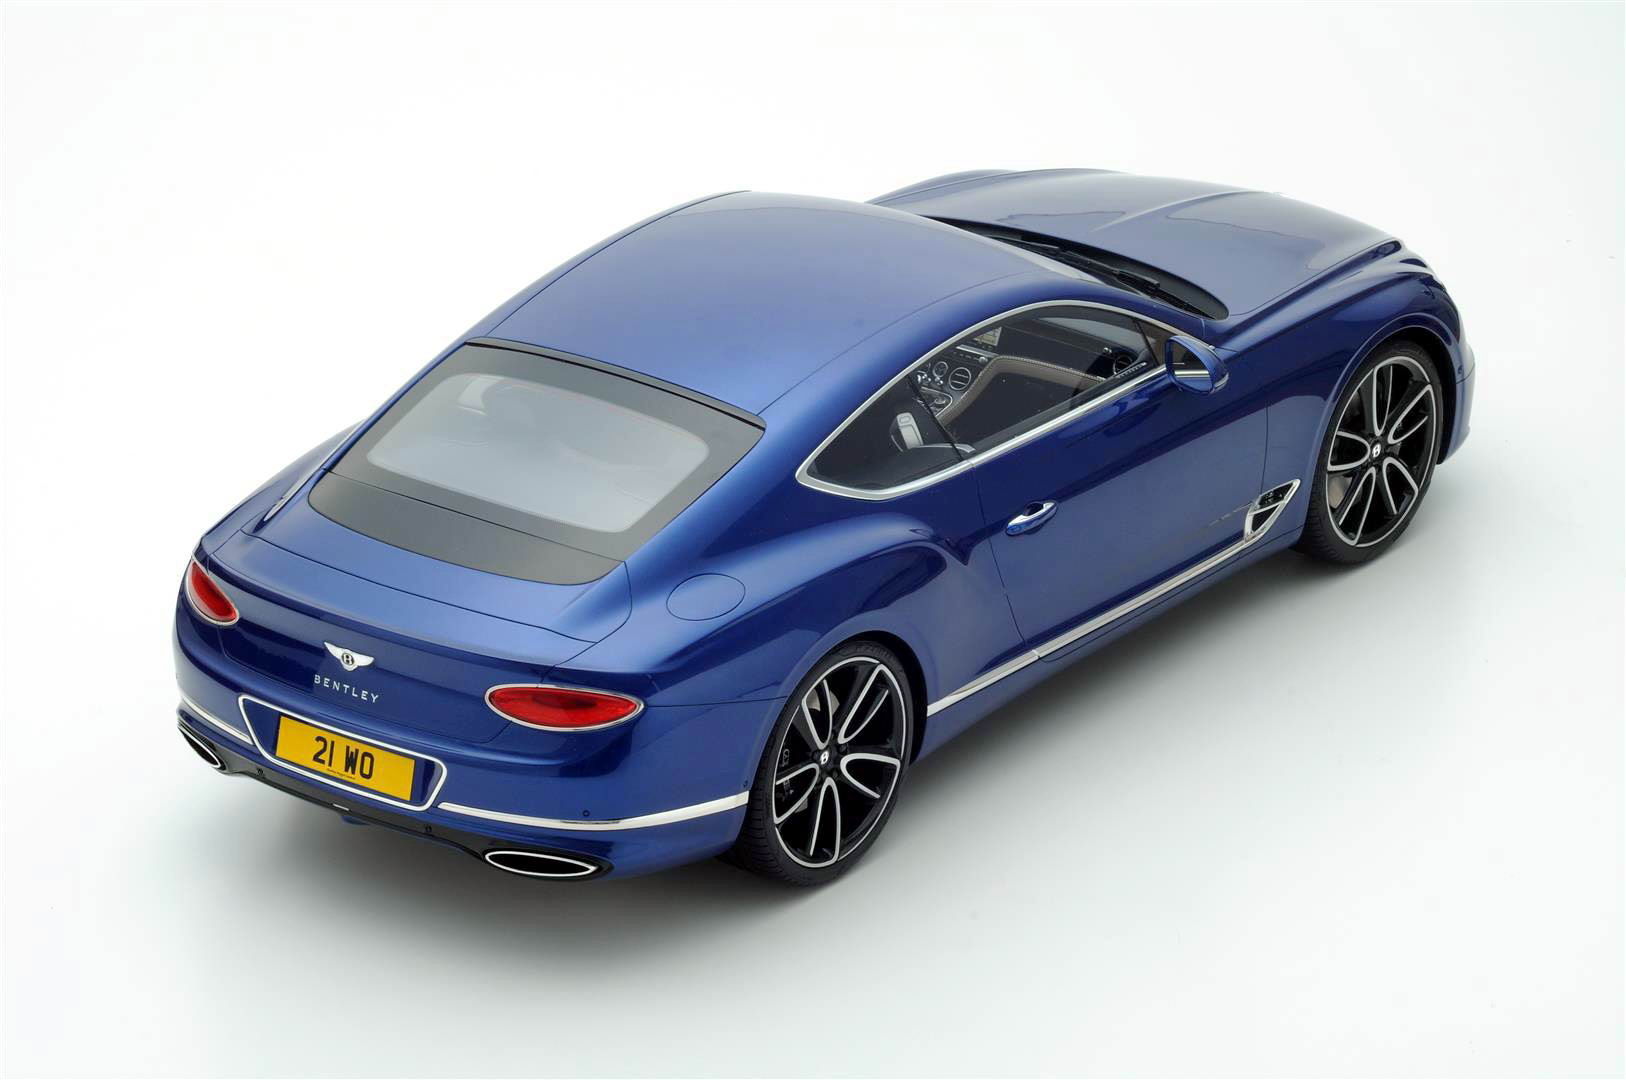 bentley new continental gt 1 8 mr collection models. Black Bedroom Furniture Sets. Home Design Ideas